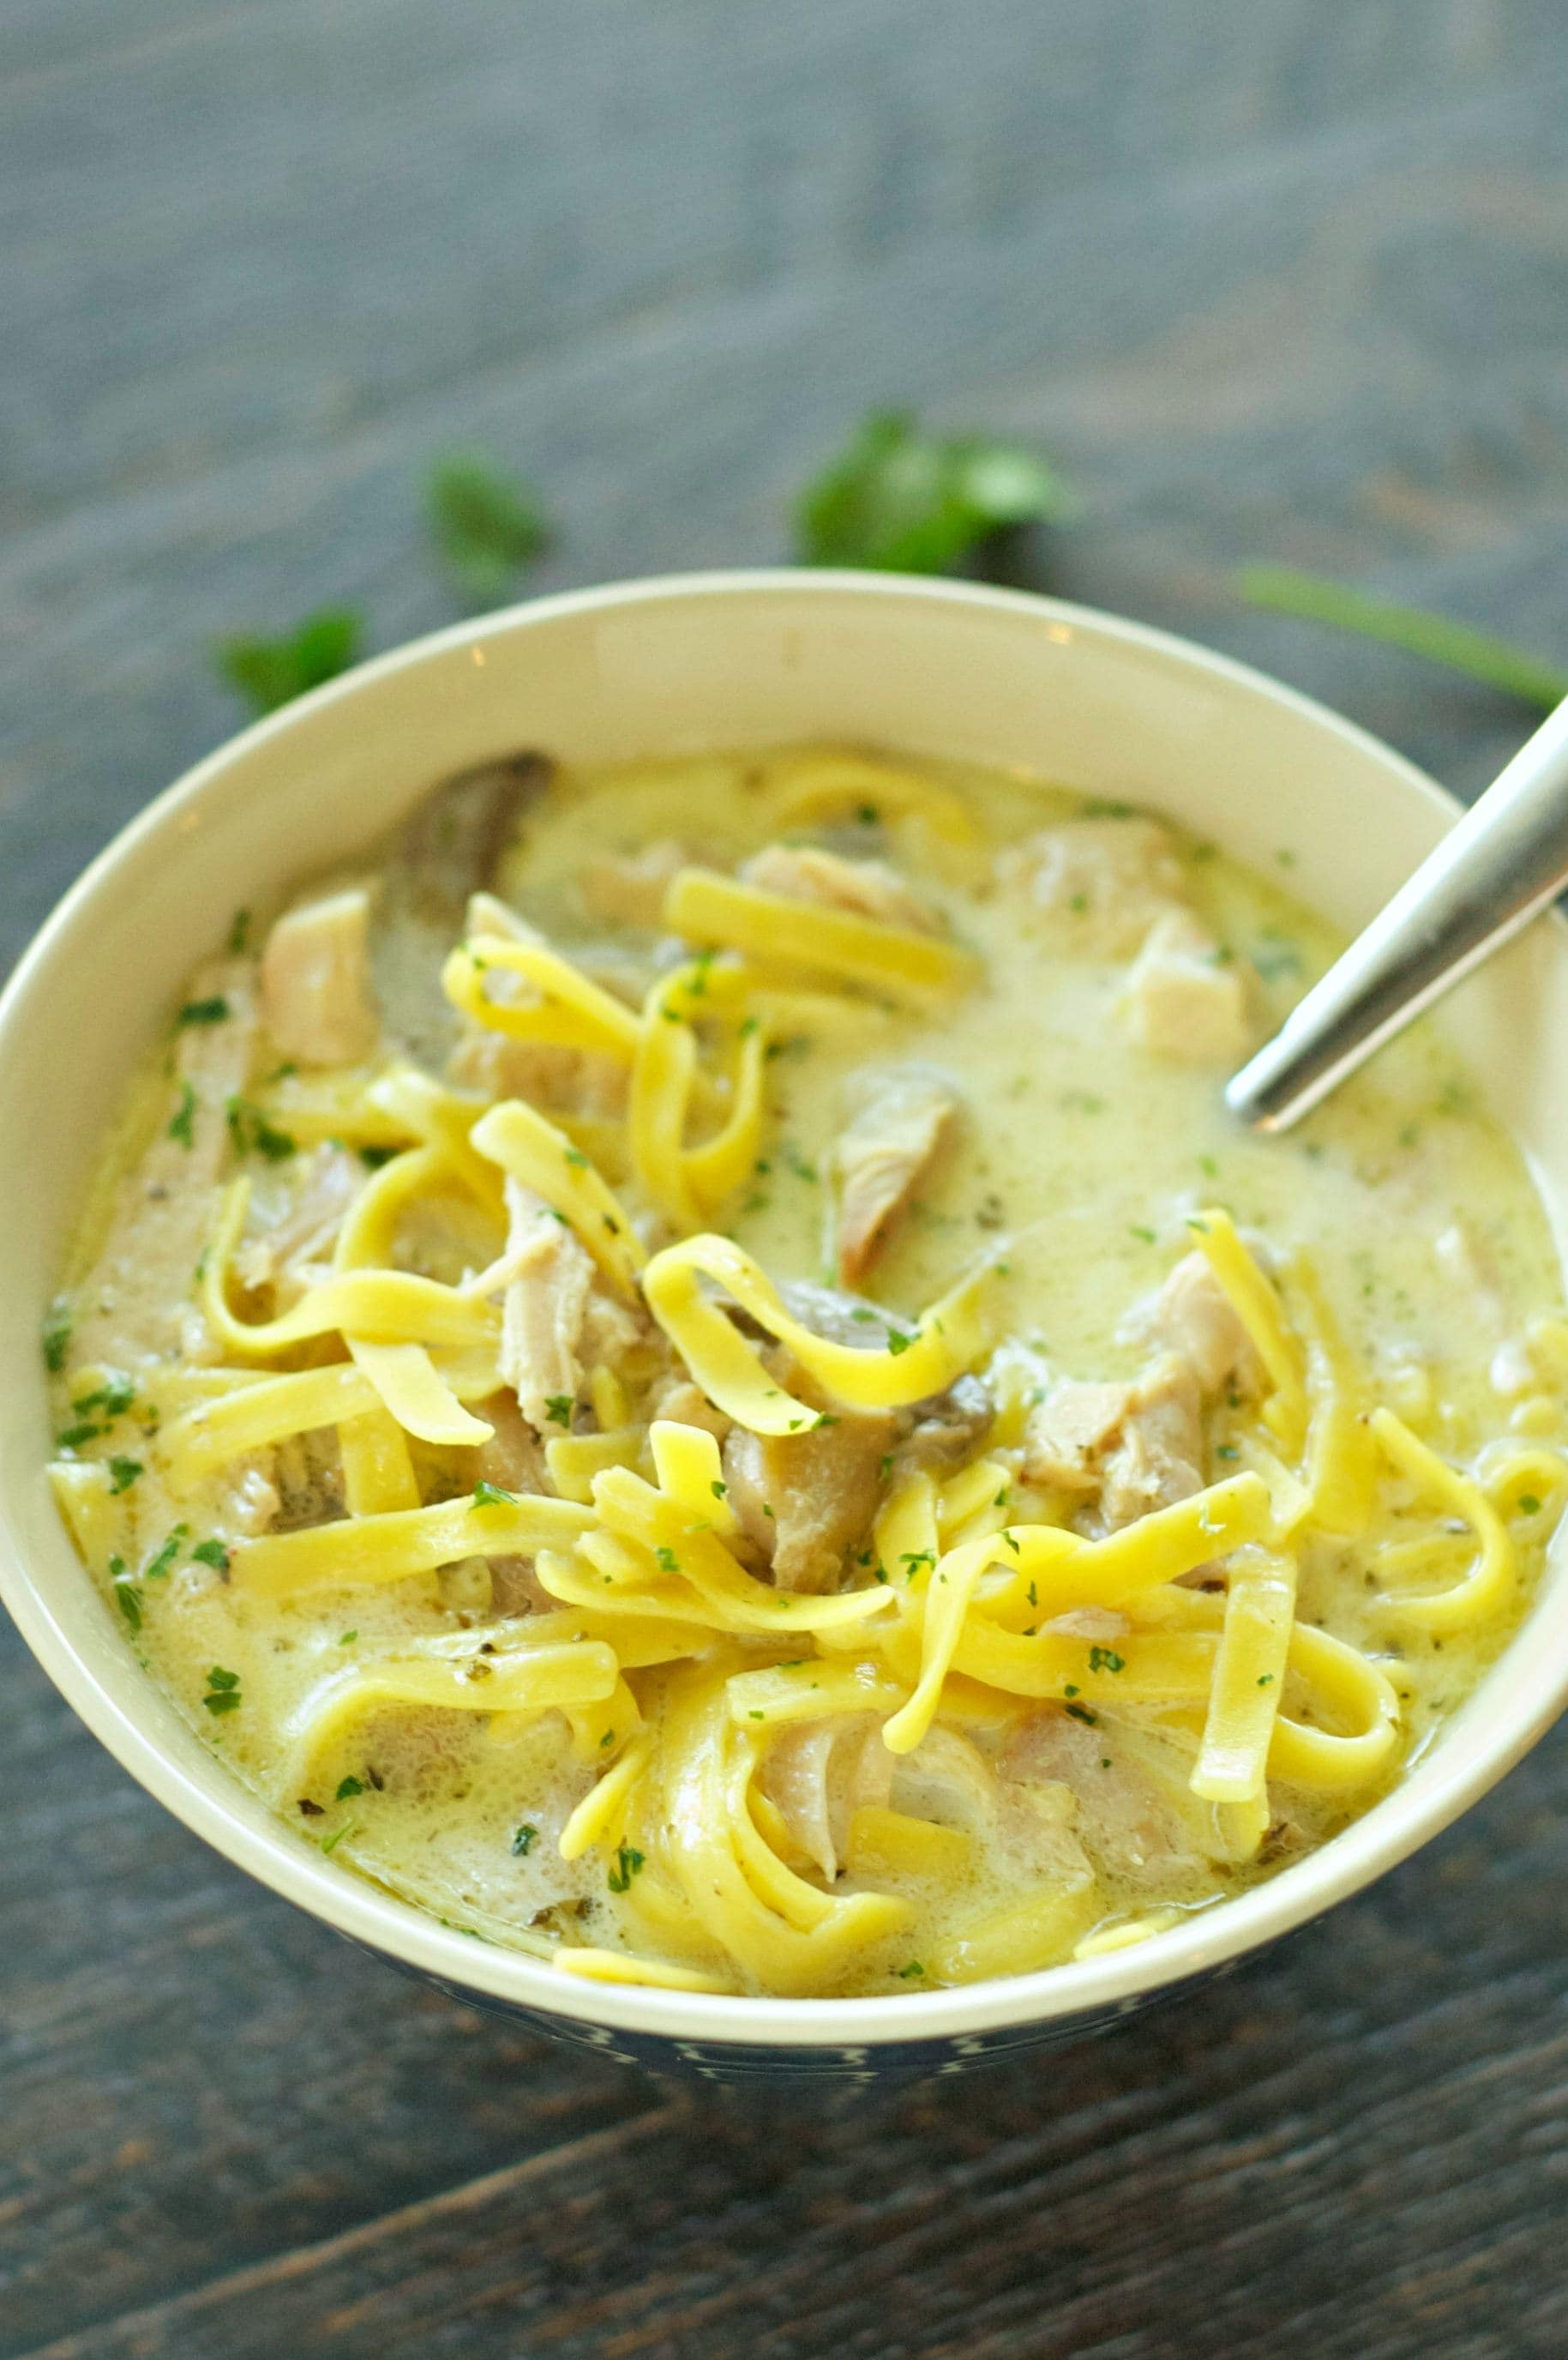 Slow cooker chicken noodle soup recipe food network oukasfo tagsslow cooker chicken noodle soup recipe food networkslow cooker chicken noodle soup recipes food networkslow cooker chicken noodle soup recipe genius forumfinder Choice Image